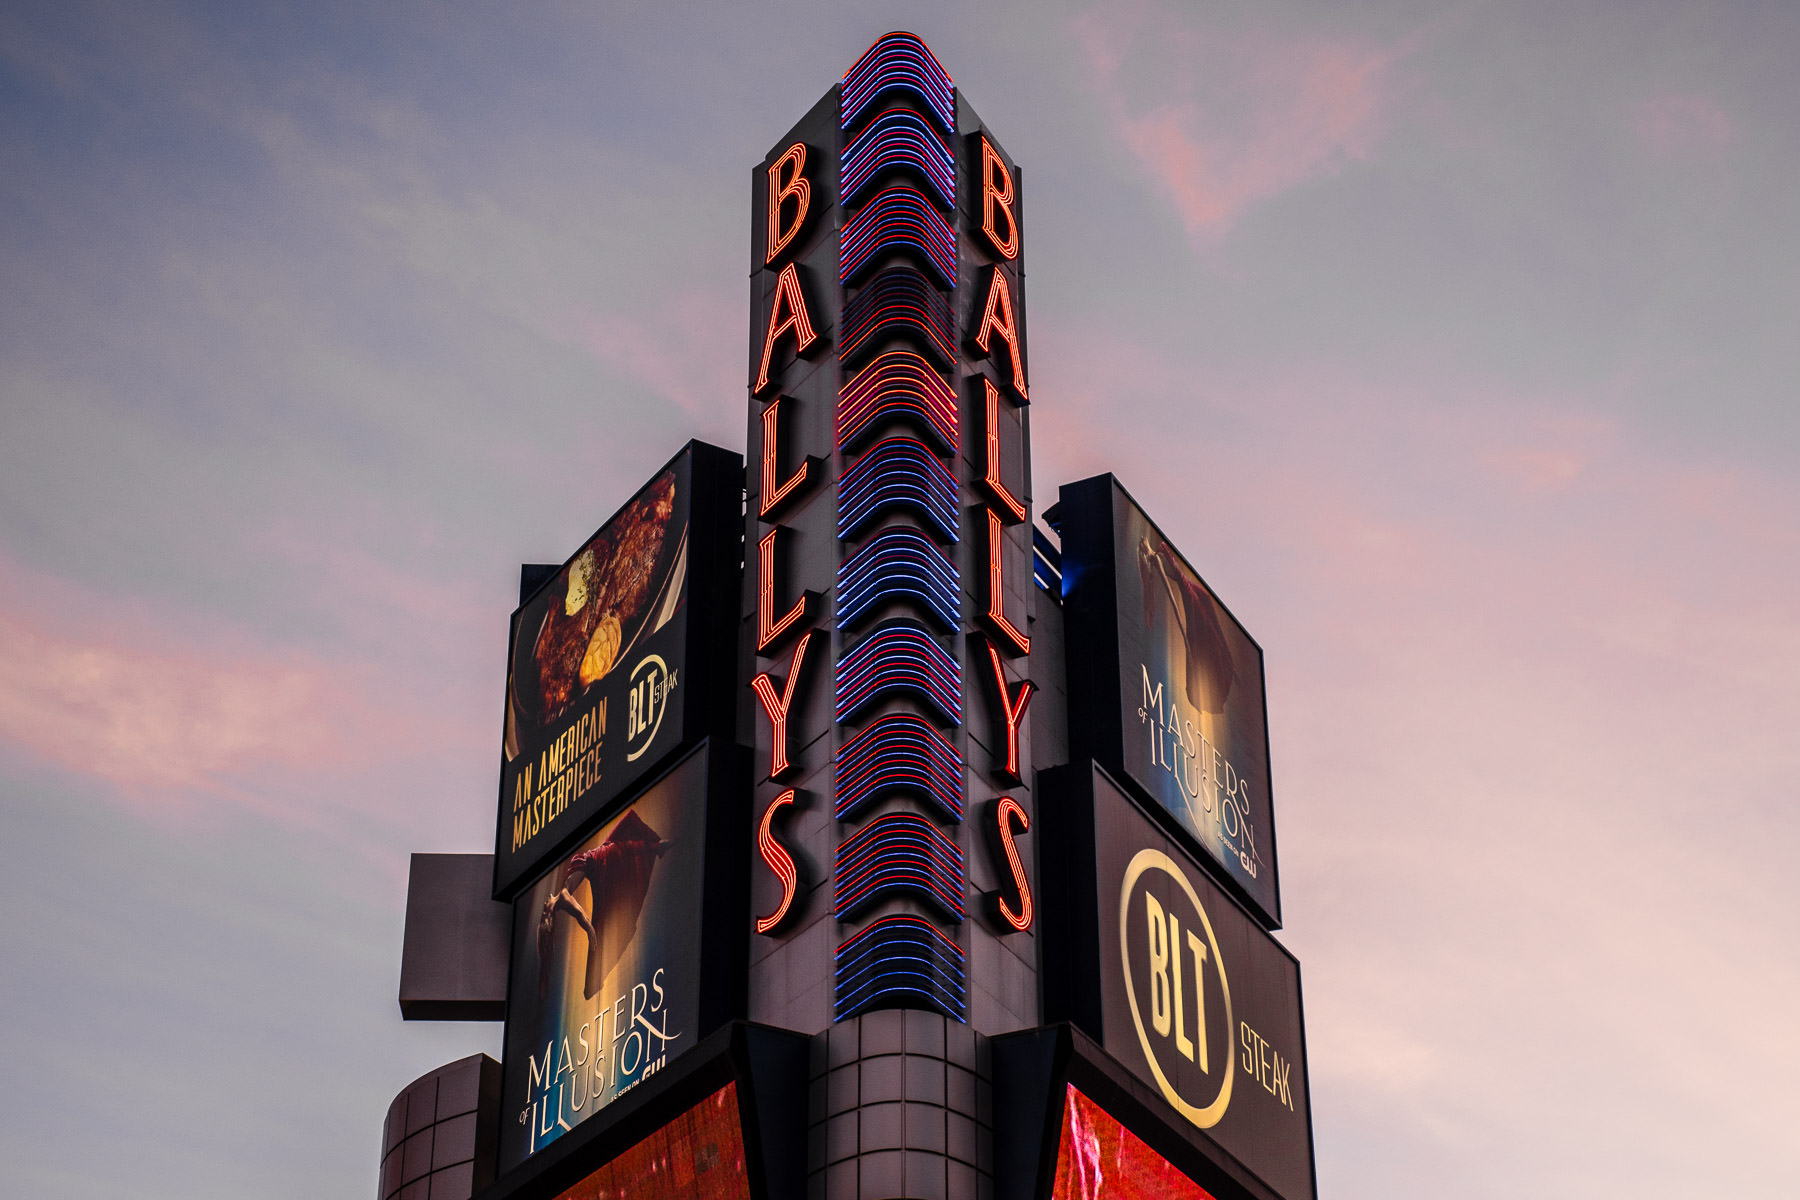 The sign at Ballys Las Vegas rises into the morning Nevada sky.